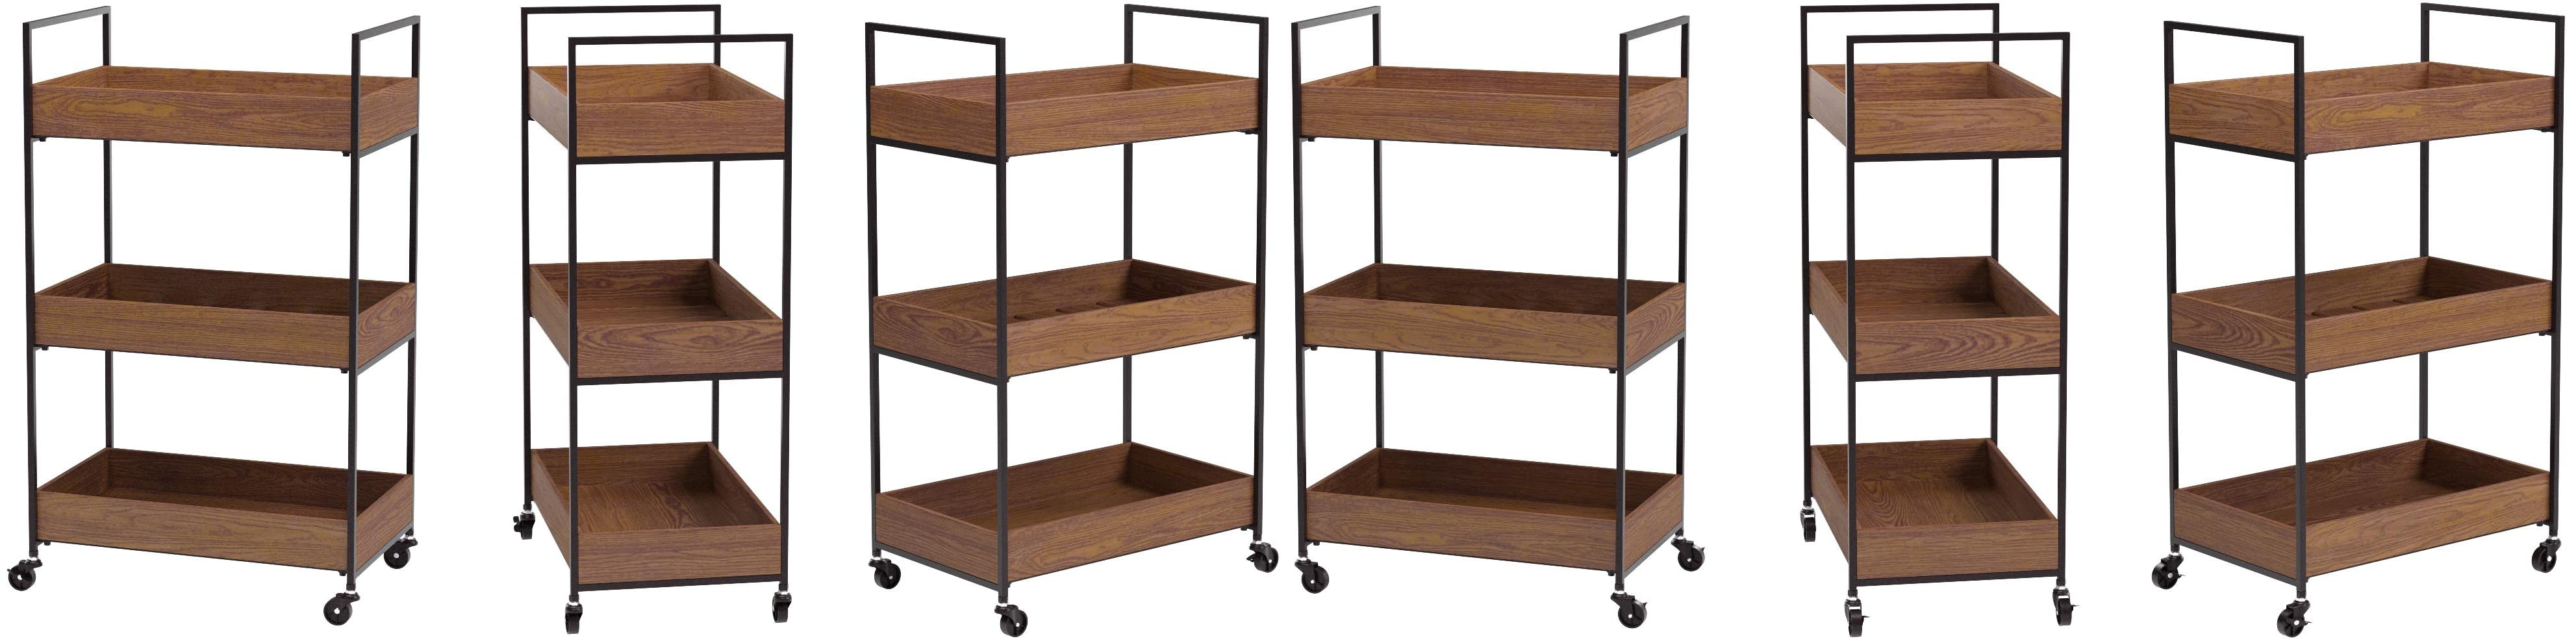 RiteSune Industrial Kitchen Bar Cart with 3-Tier Wood Shelves on Wheels Wine Cart for Home Kitchen Club Rustic Brown